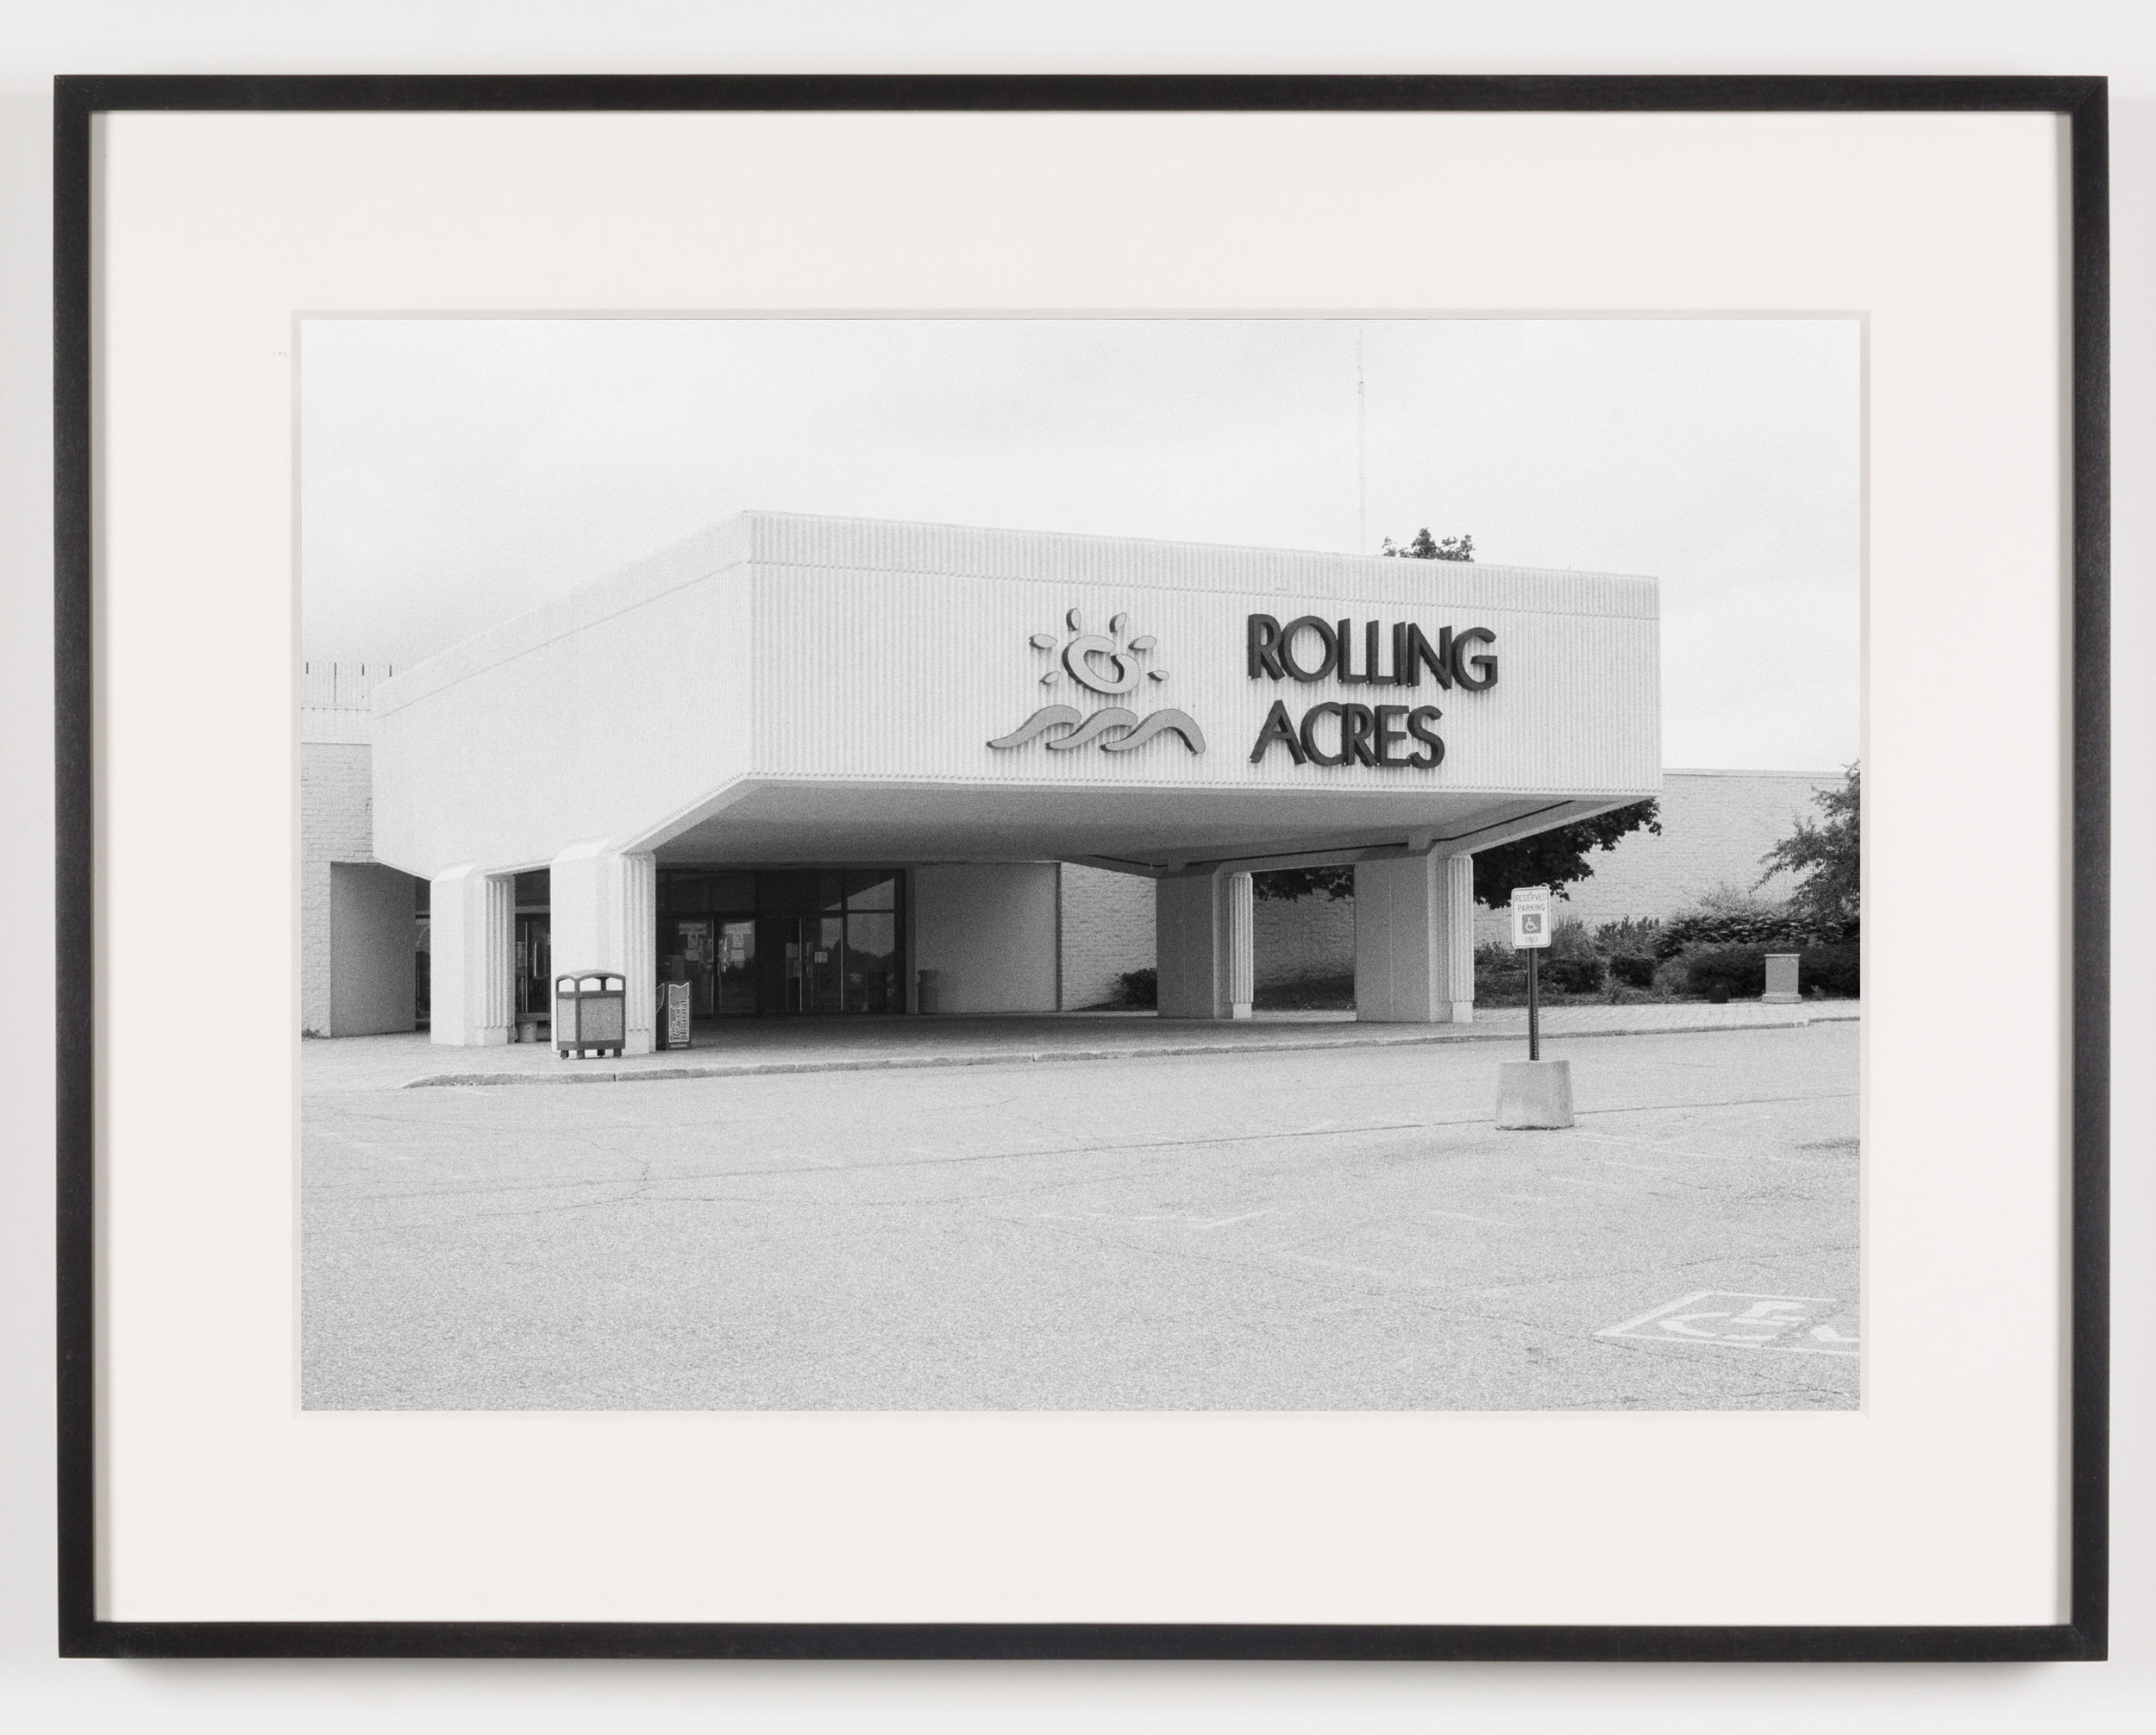 Rolling Acres Mall (View of Main Entrance) Akron, OH, Est. 1975    2011   Epson Ultrachrome K3 archival ink jet print on Hahnemühle Photo Rag paper  21 5/8 x 28 1/8 inches   American Passages, 2001–2011